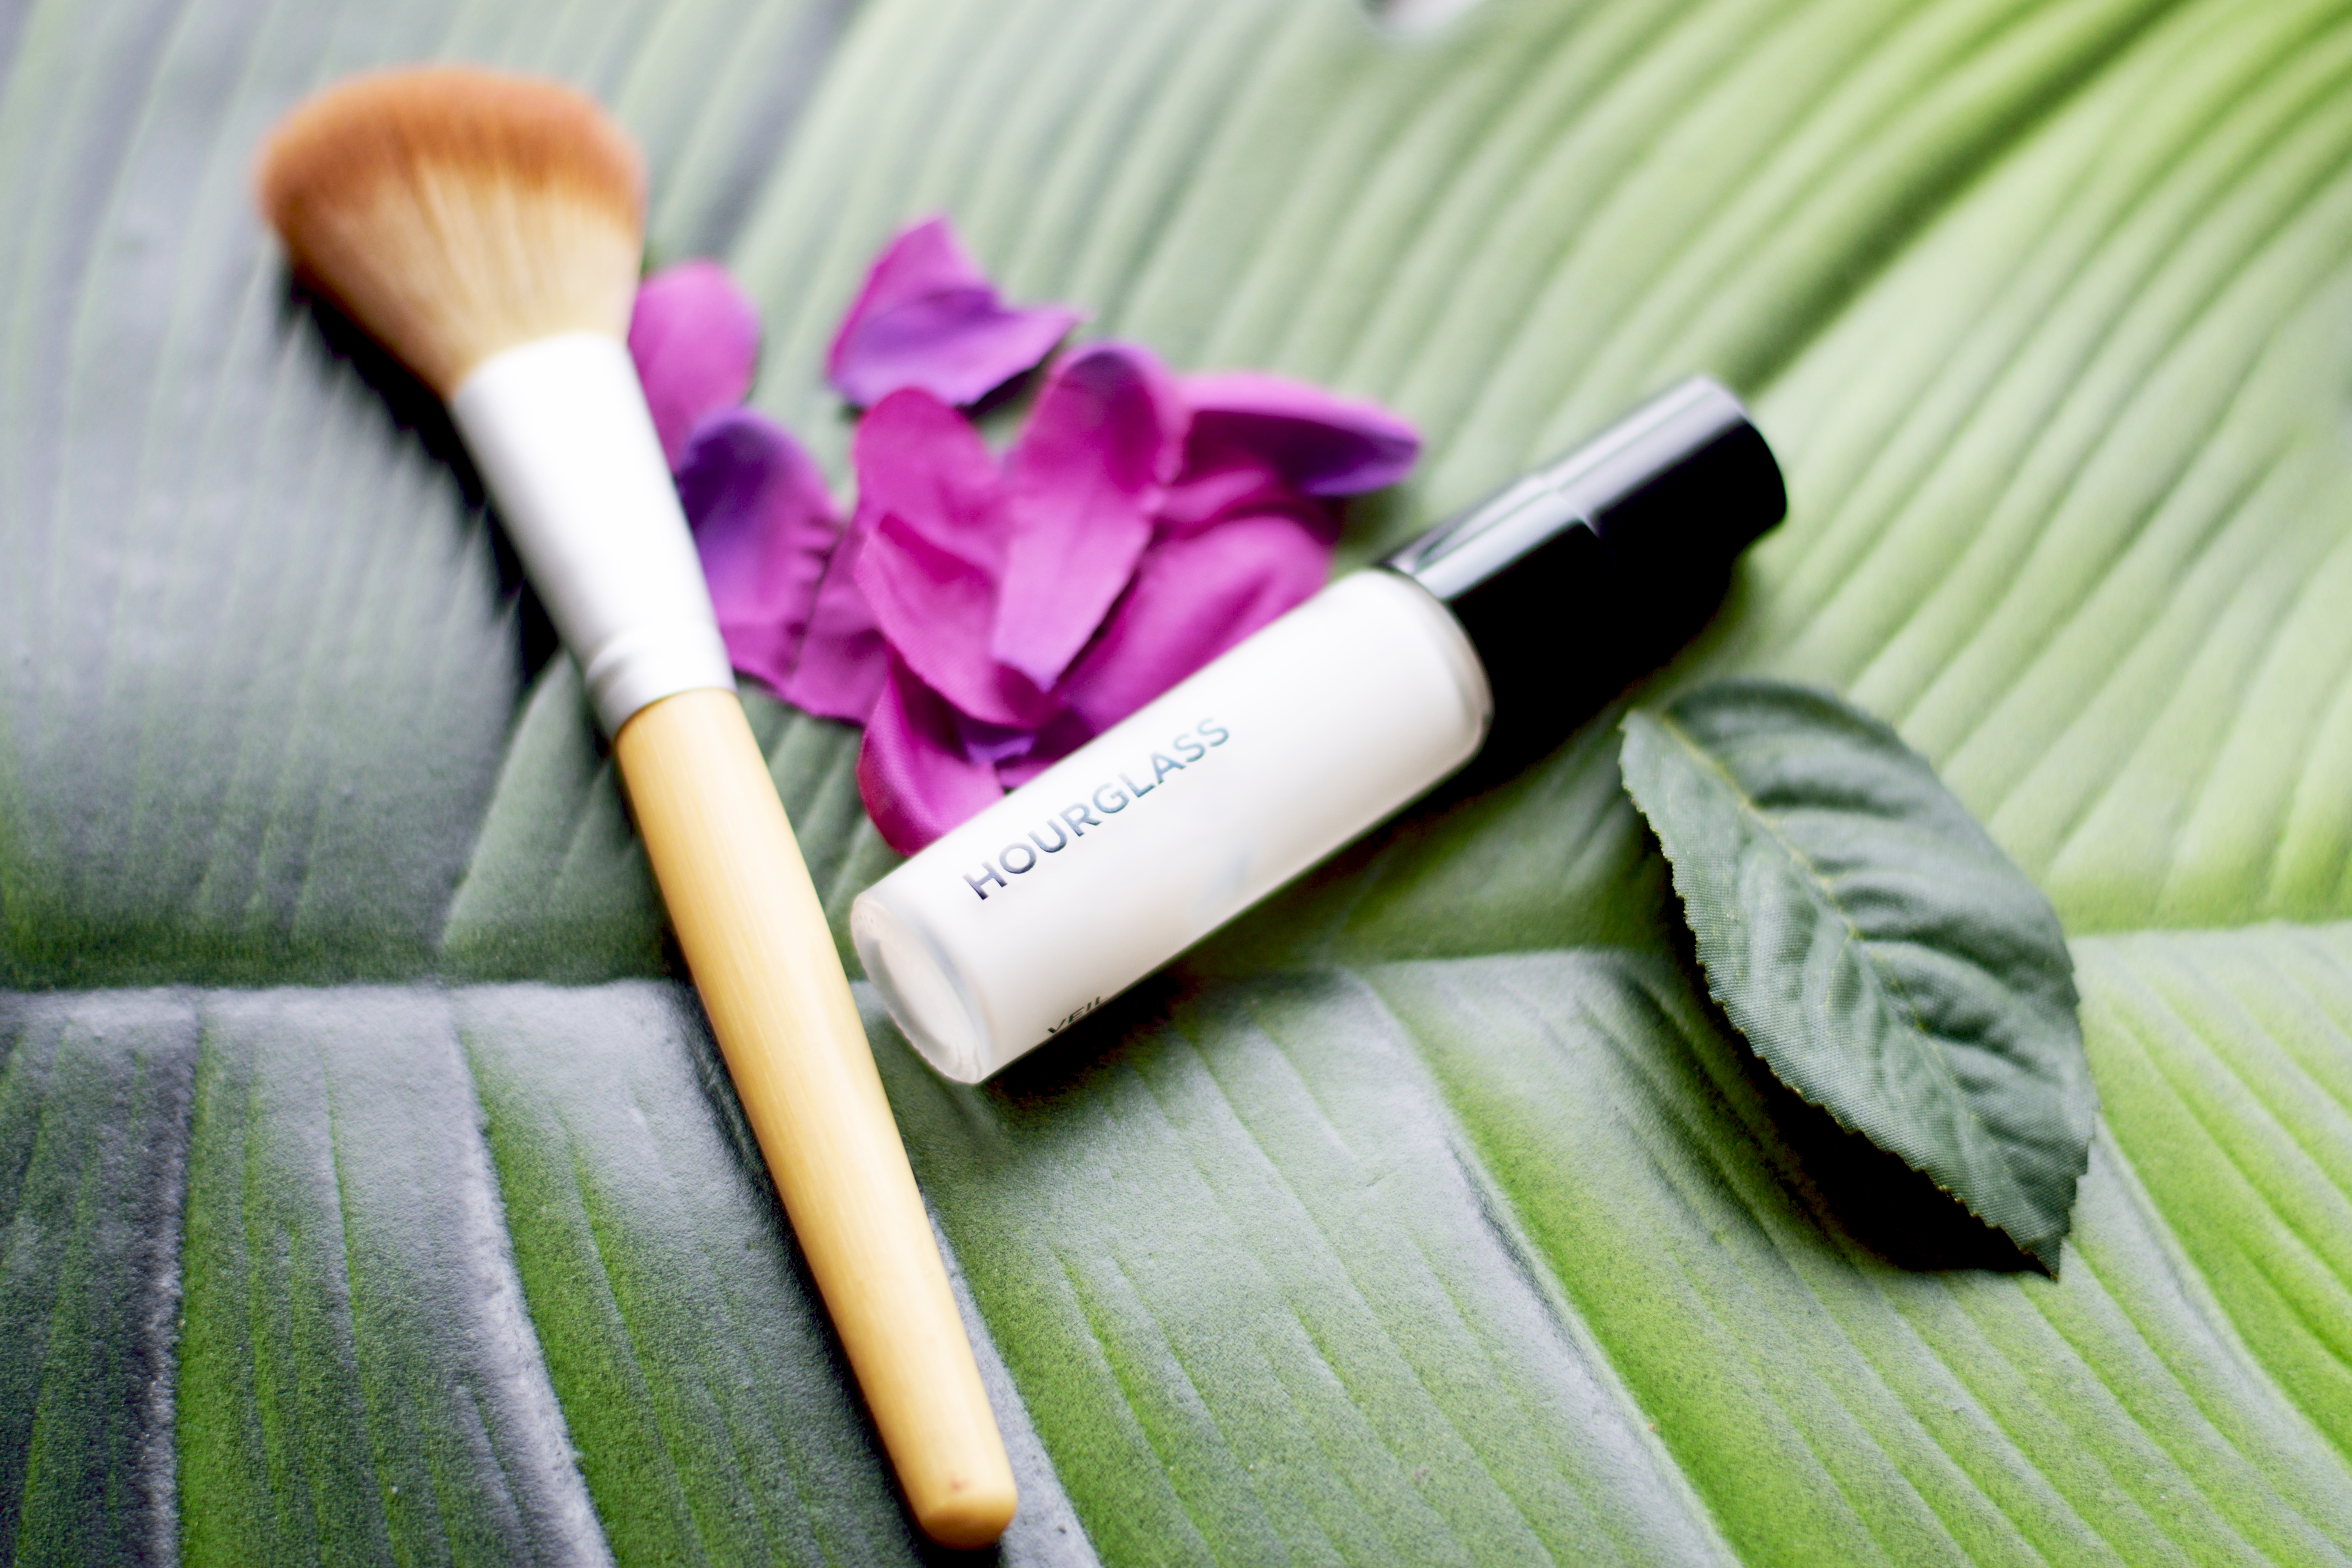 Hourglass Veil Mineral Face Primer - Canvas of your makeup